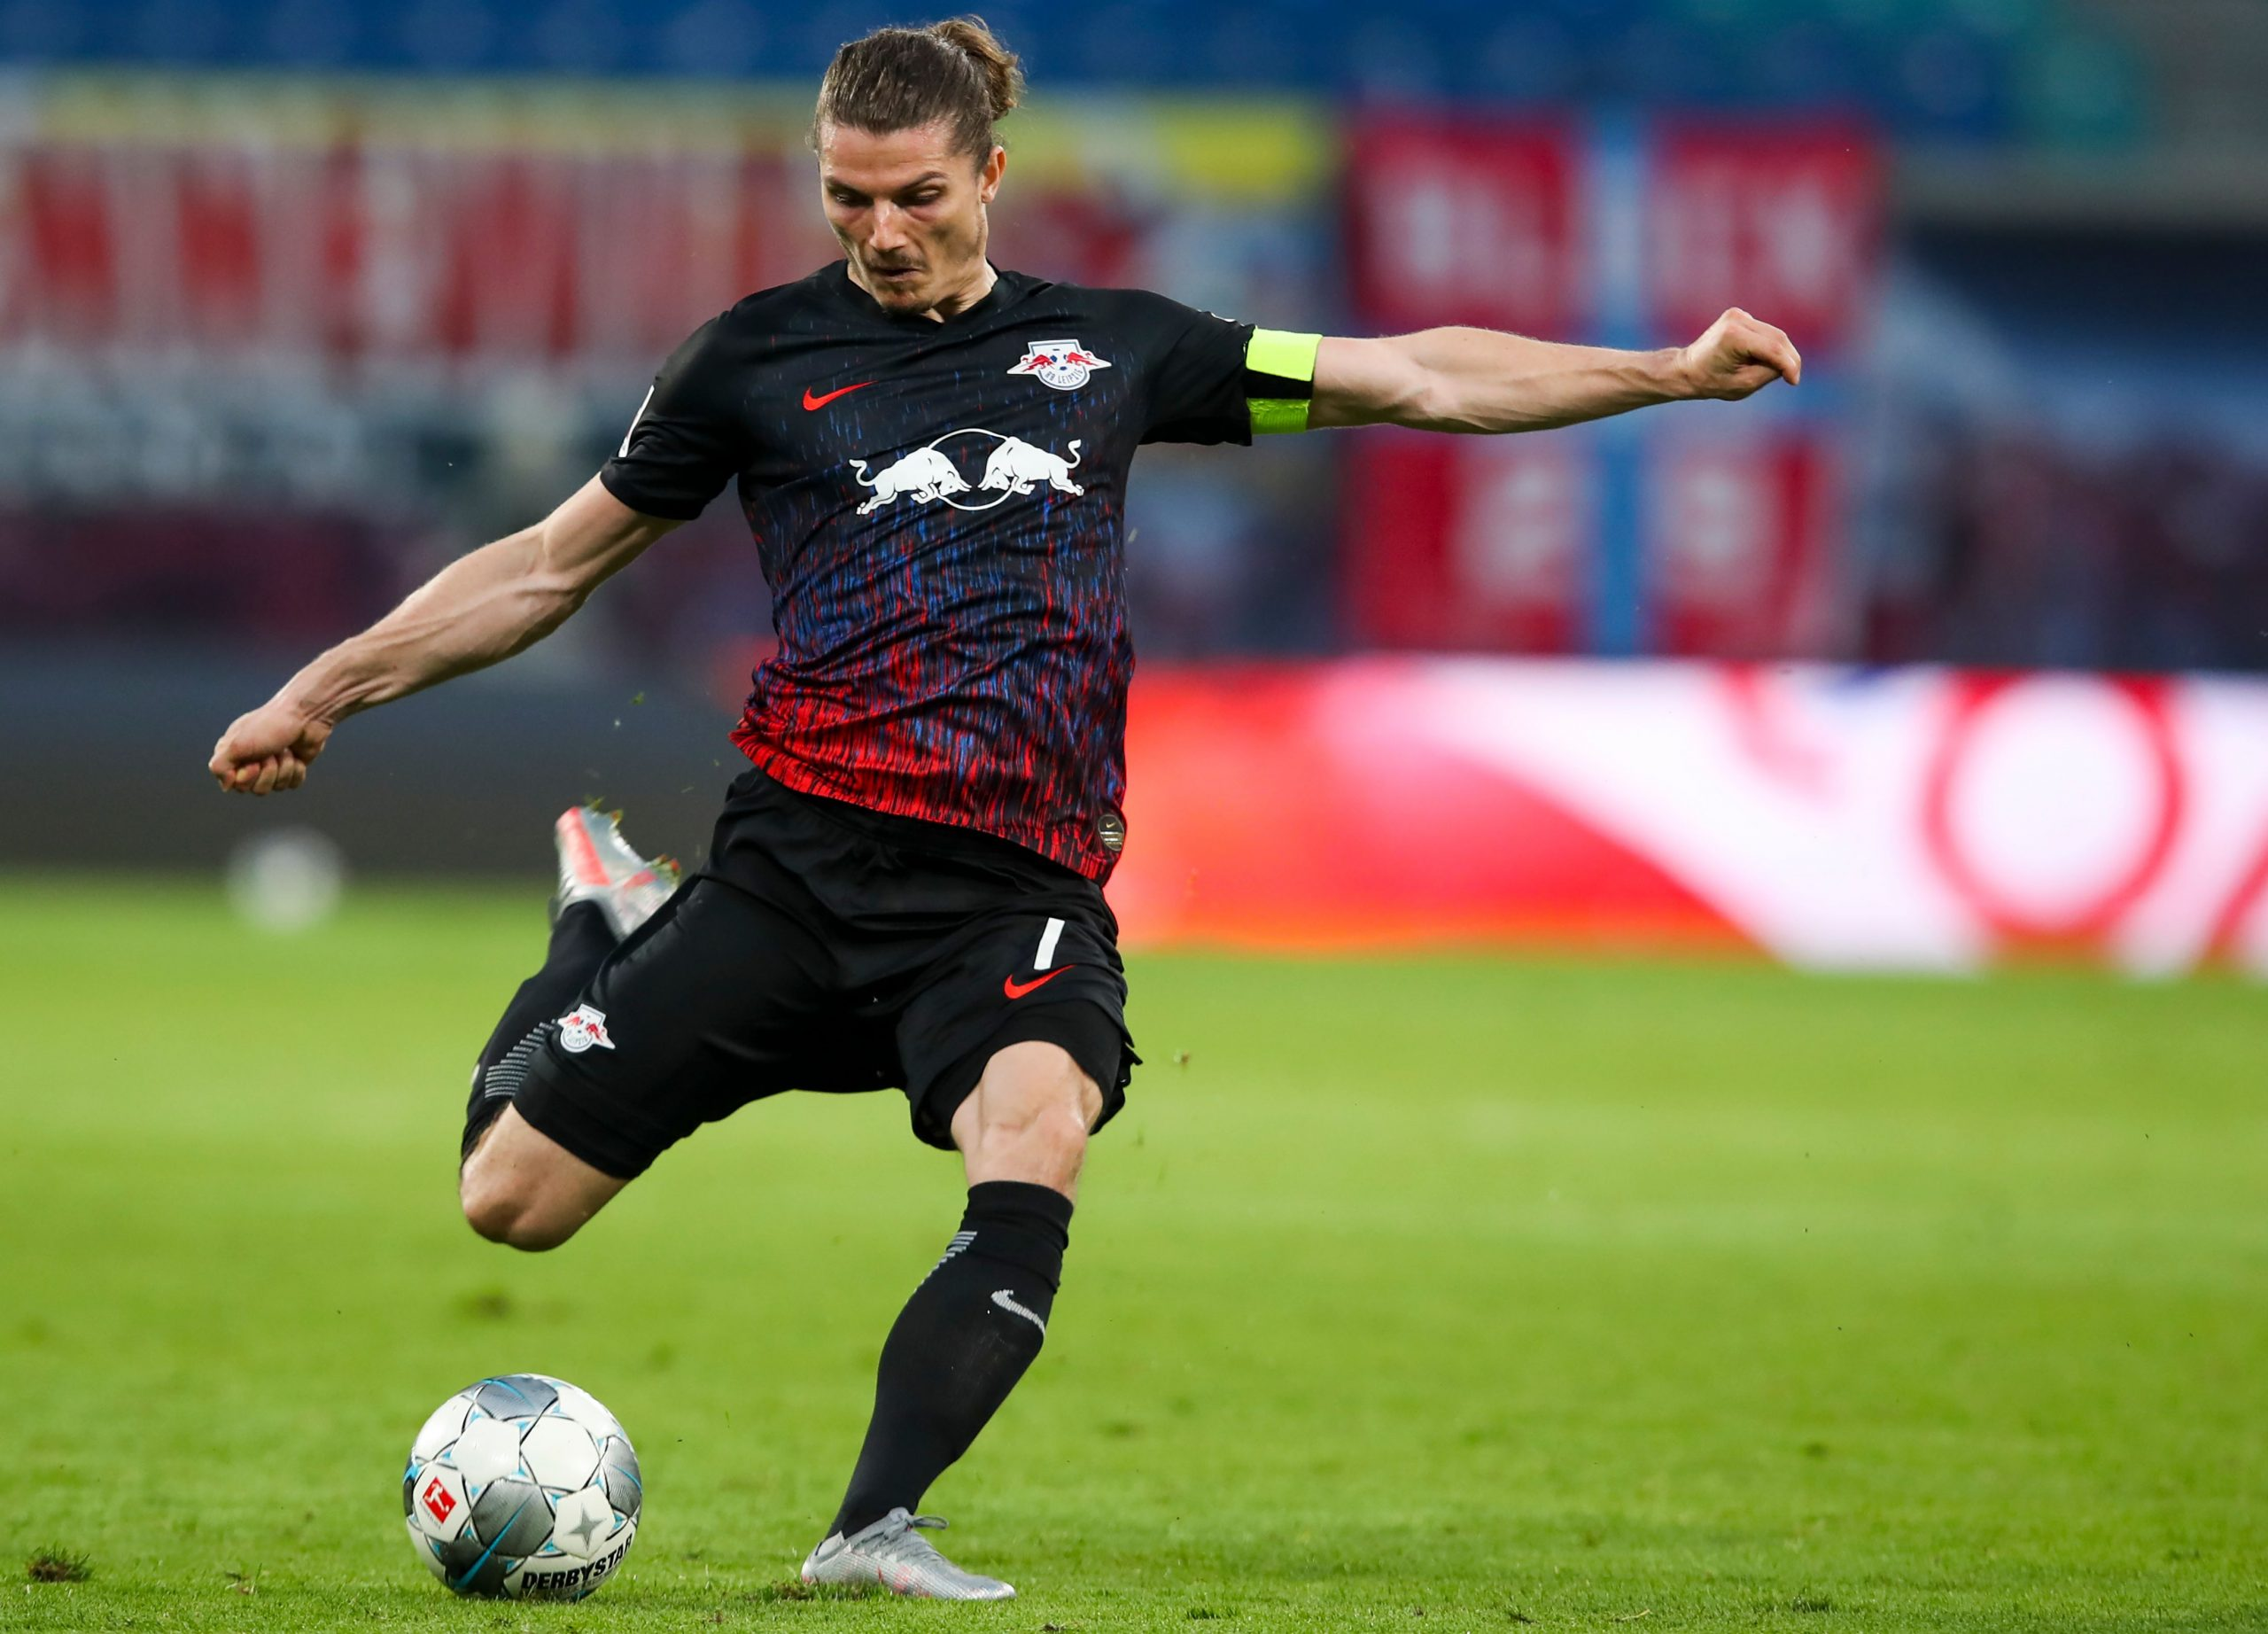 Sabitzer's contract with RB Leipzig expires in 2022. (GETTY Images)